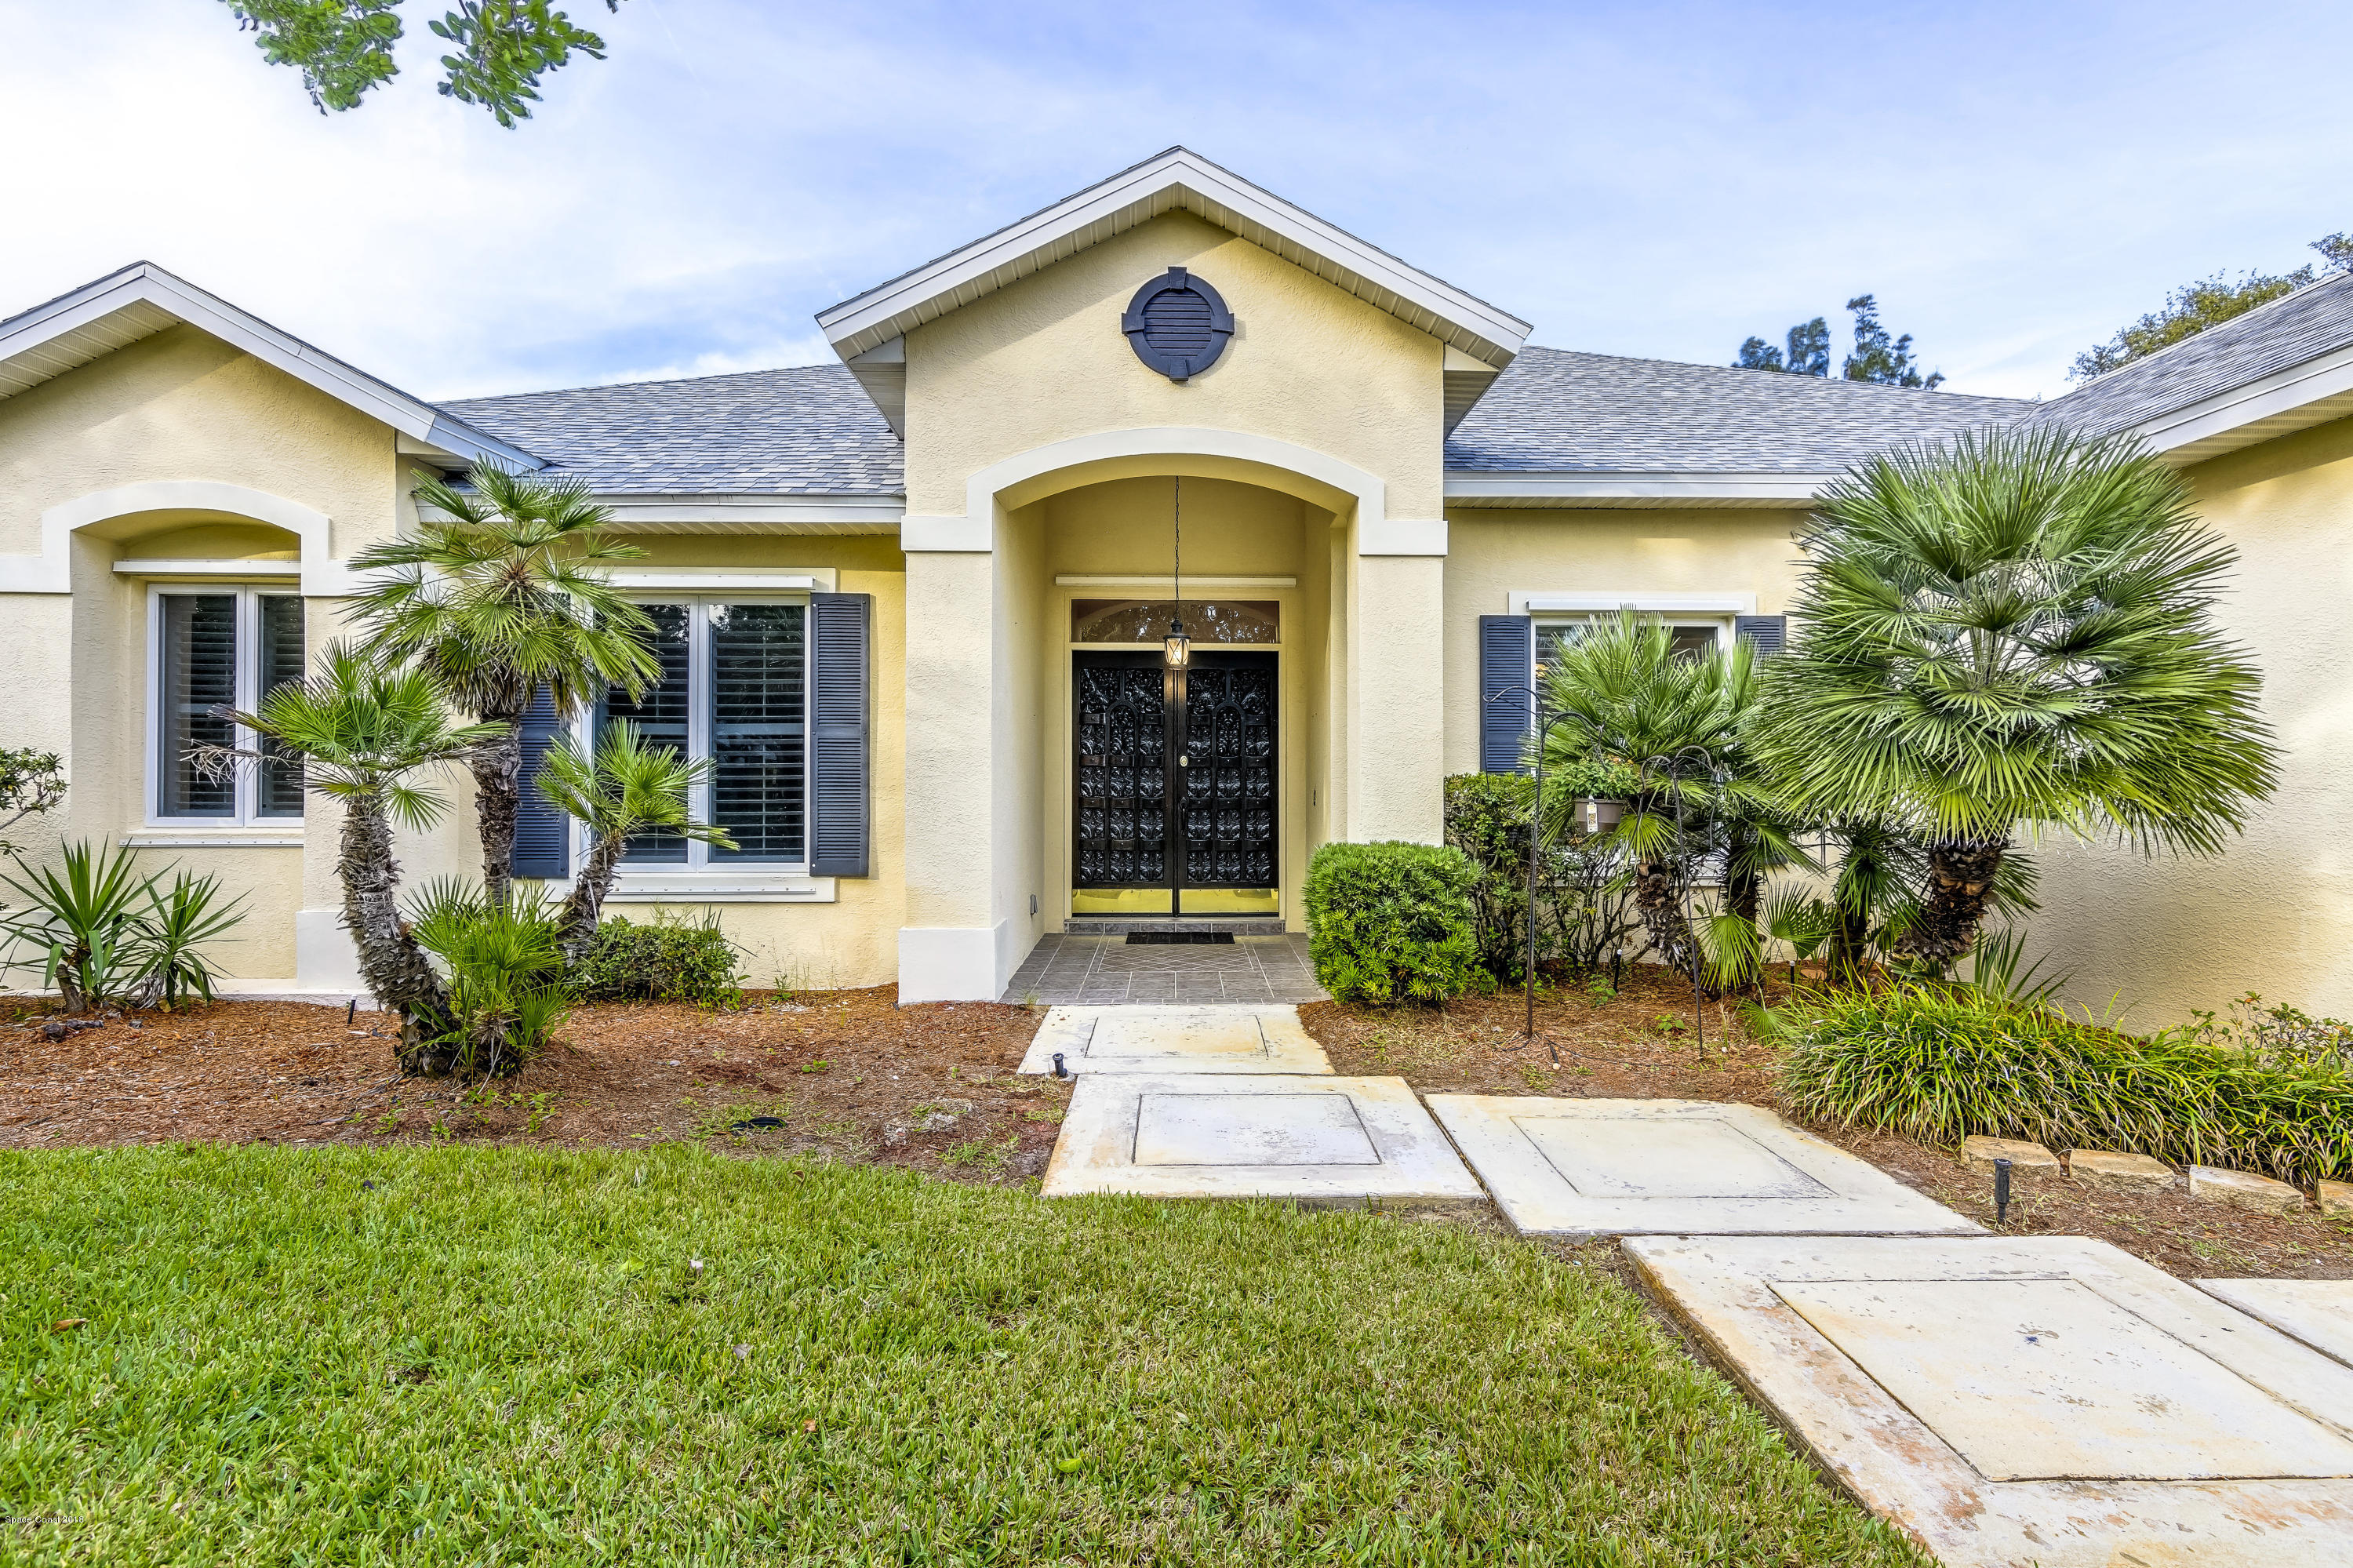 Single Family Home for Sale at 223 Peregrine 223 Peregrine Indialantic, Florida 32903 United States